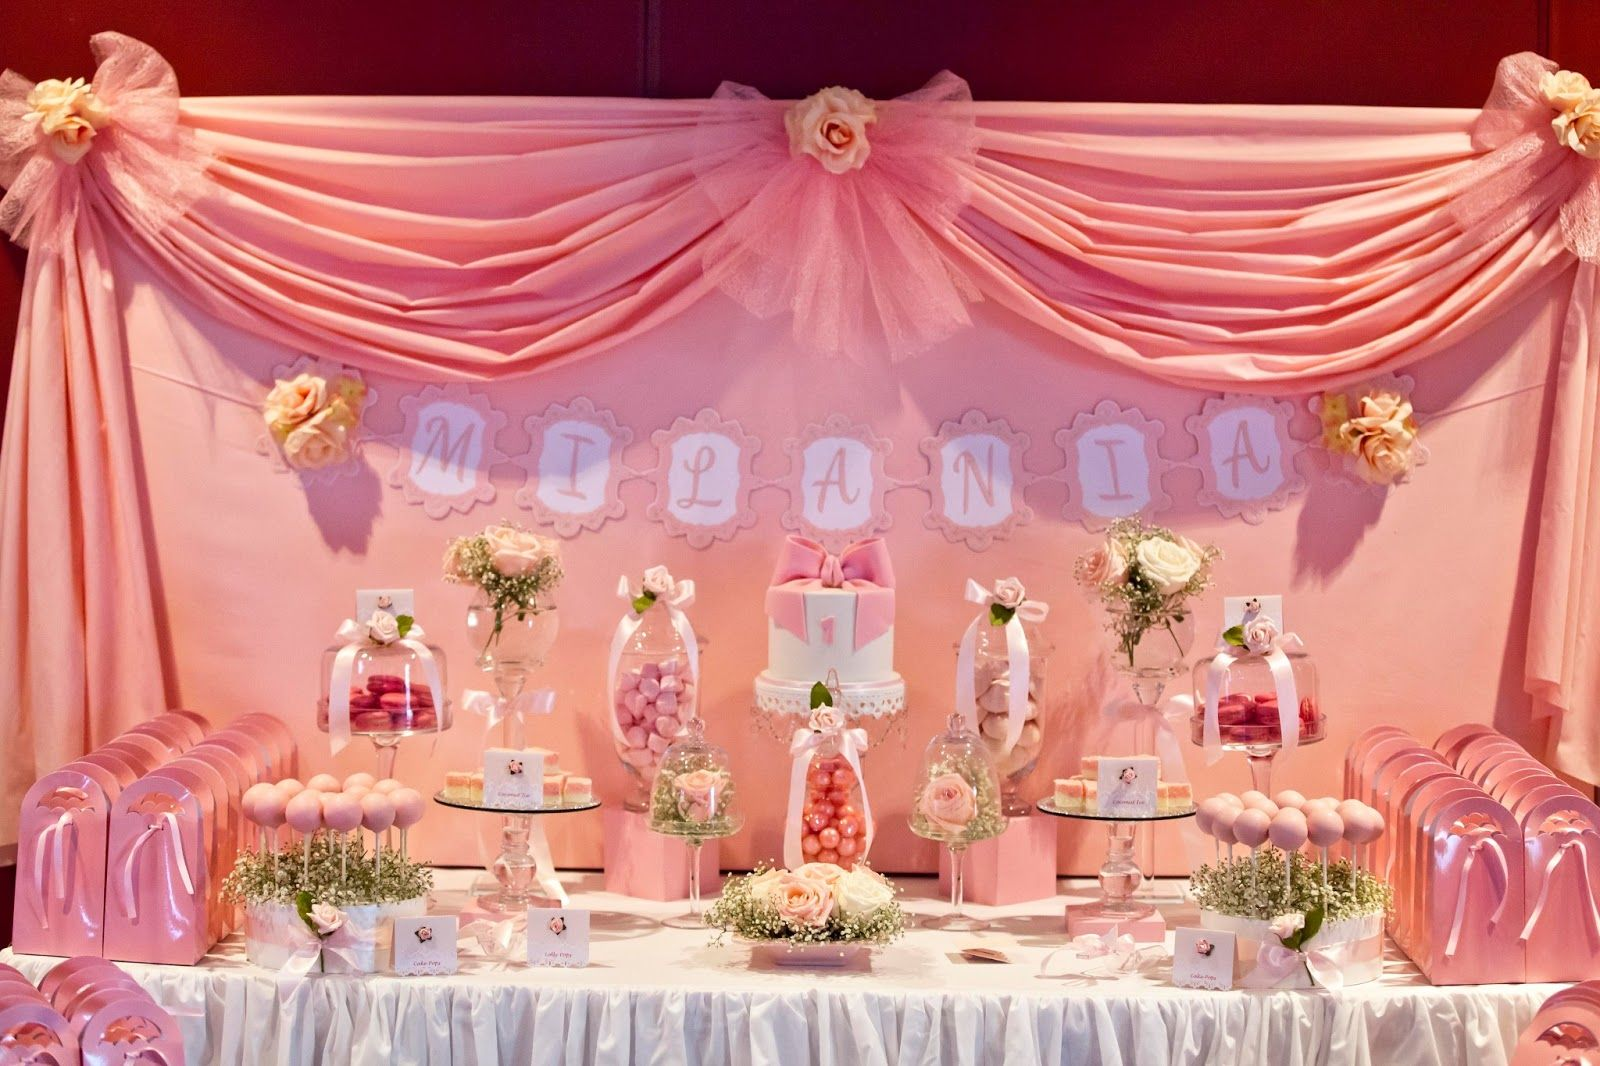 Birthday table decorations for girls - Bows And Pink Roses Themed Table For Milani S Birthday And Christening By Little Wish Cakes